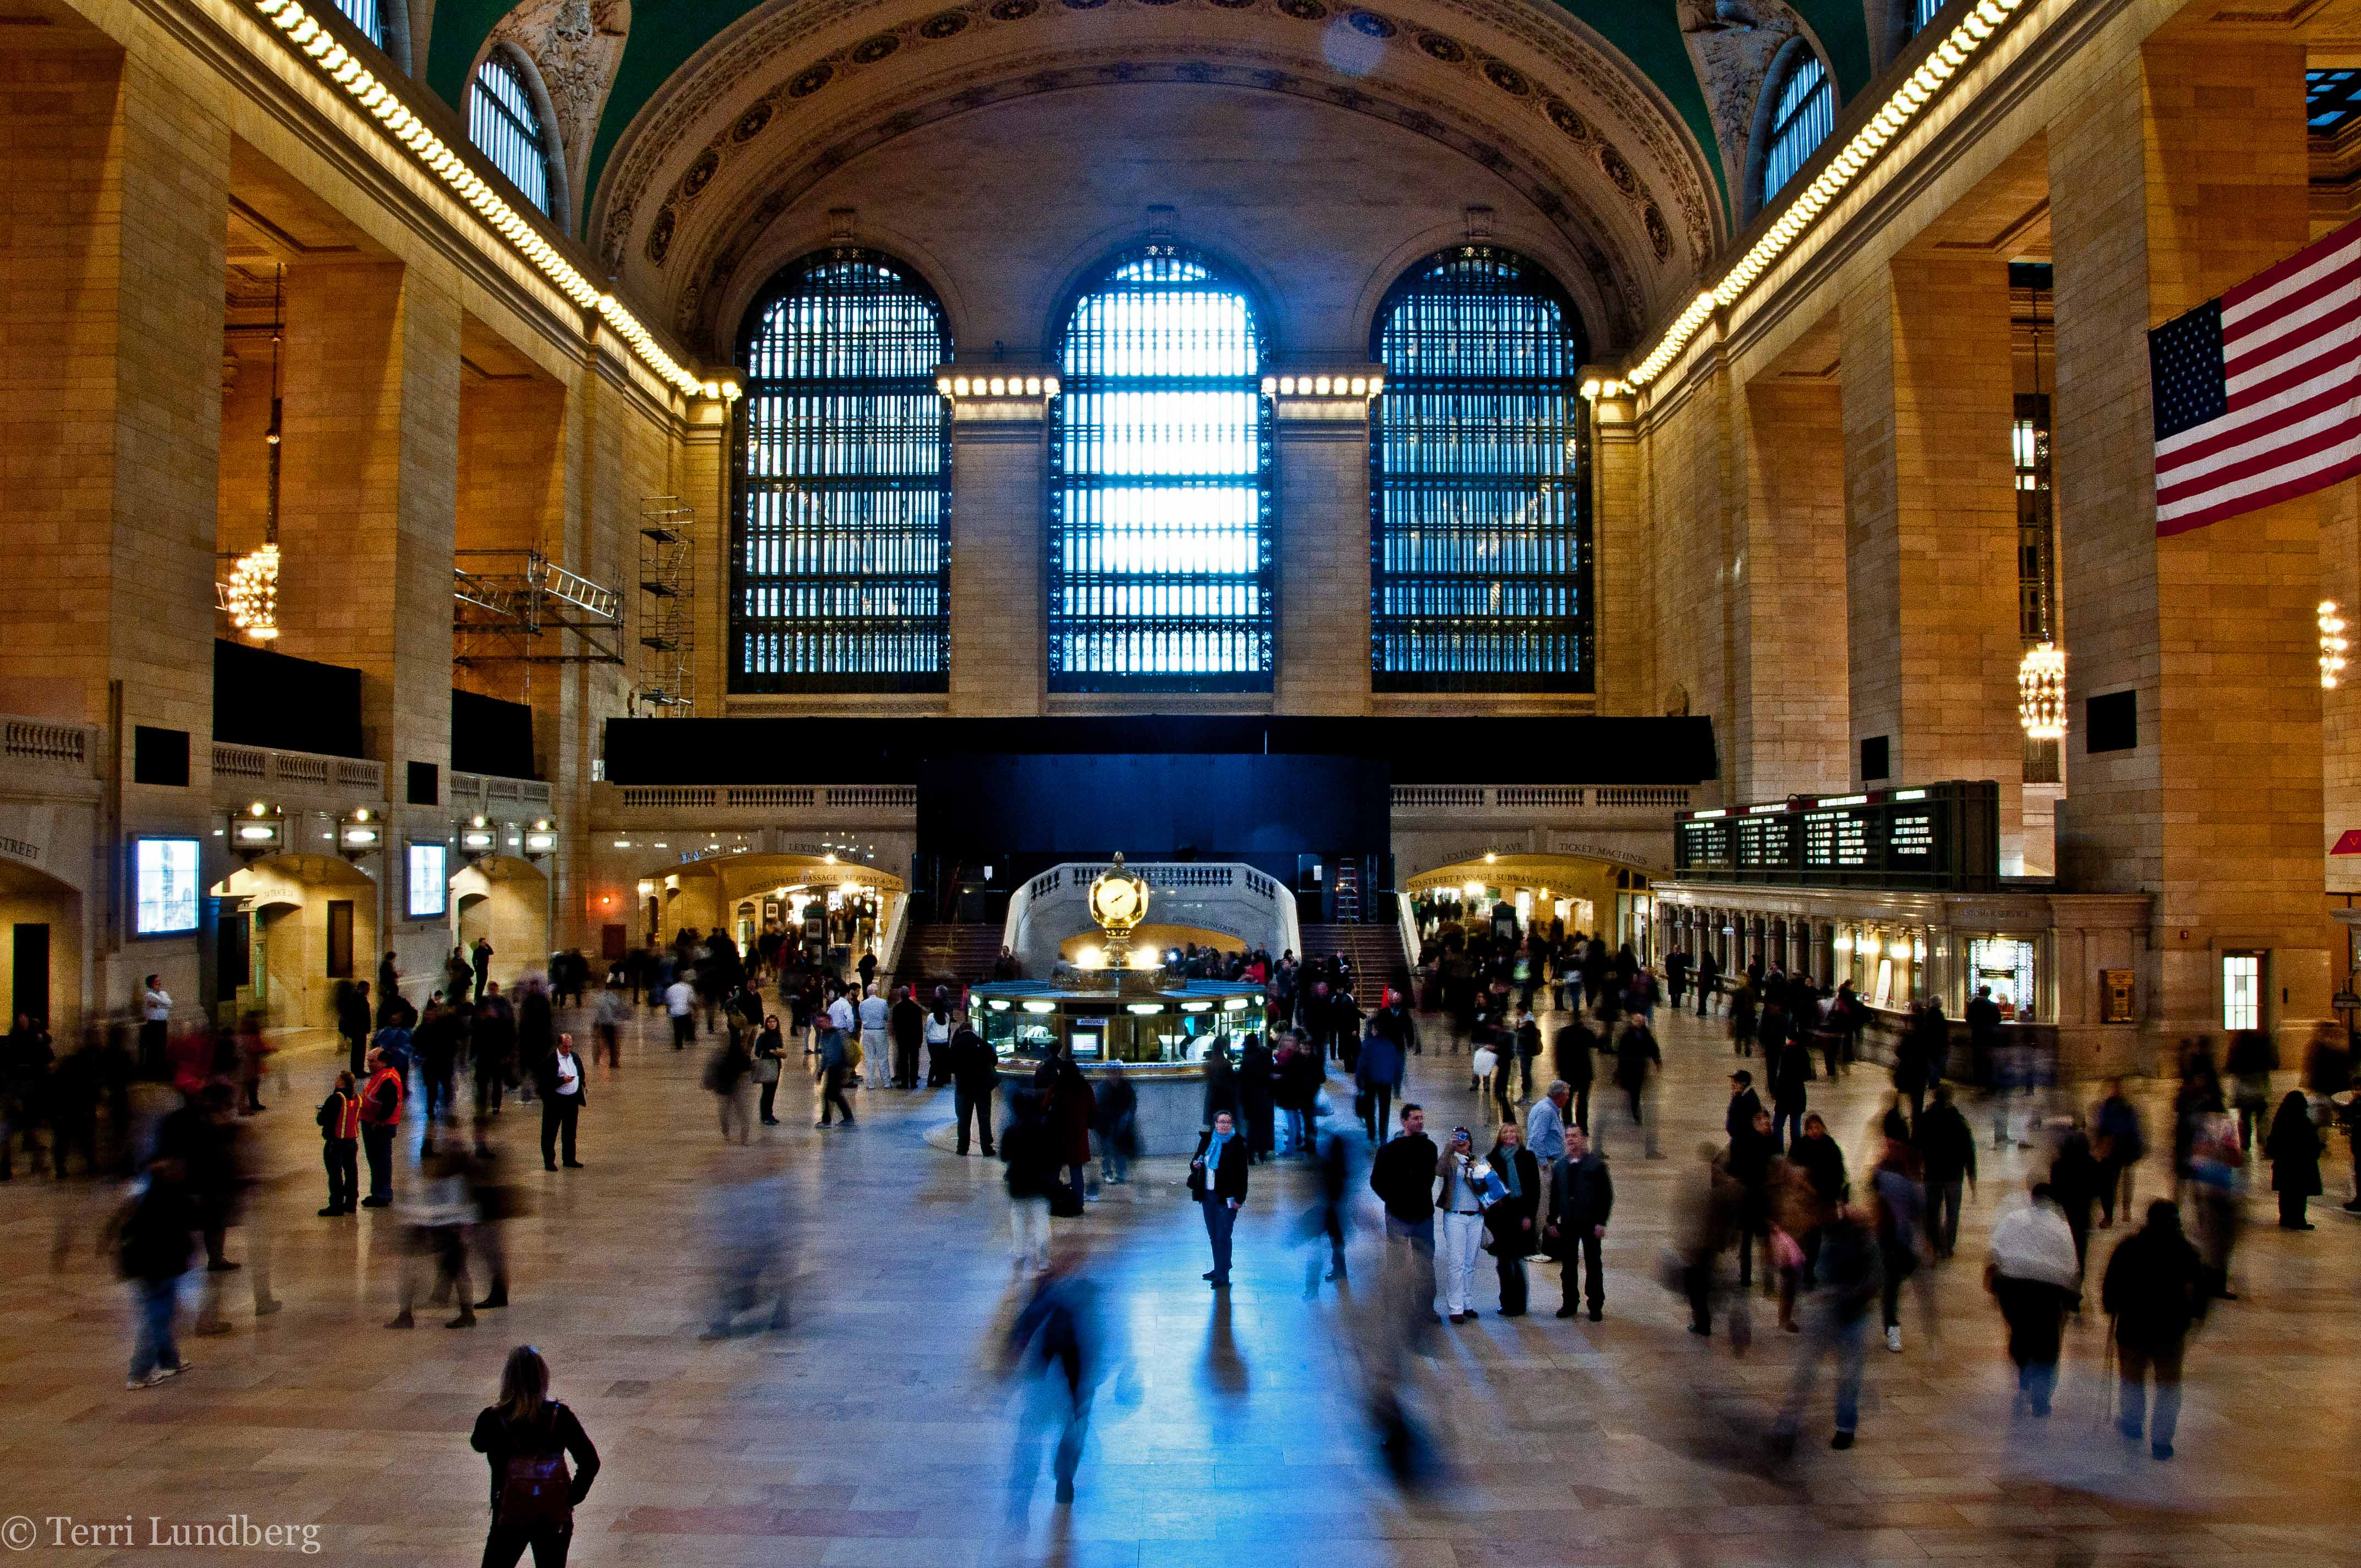 The History of NYC's Grand Central Station  |Attractions Near Grand Central Station